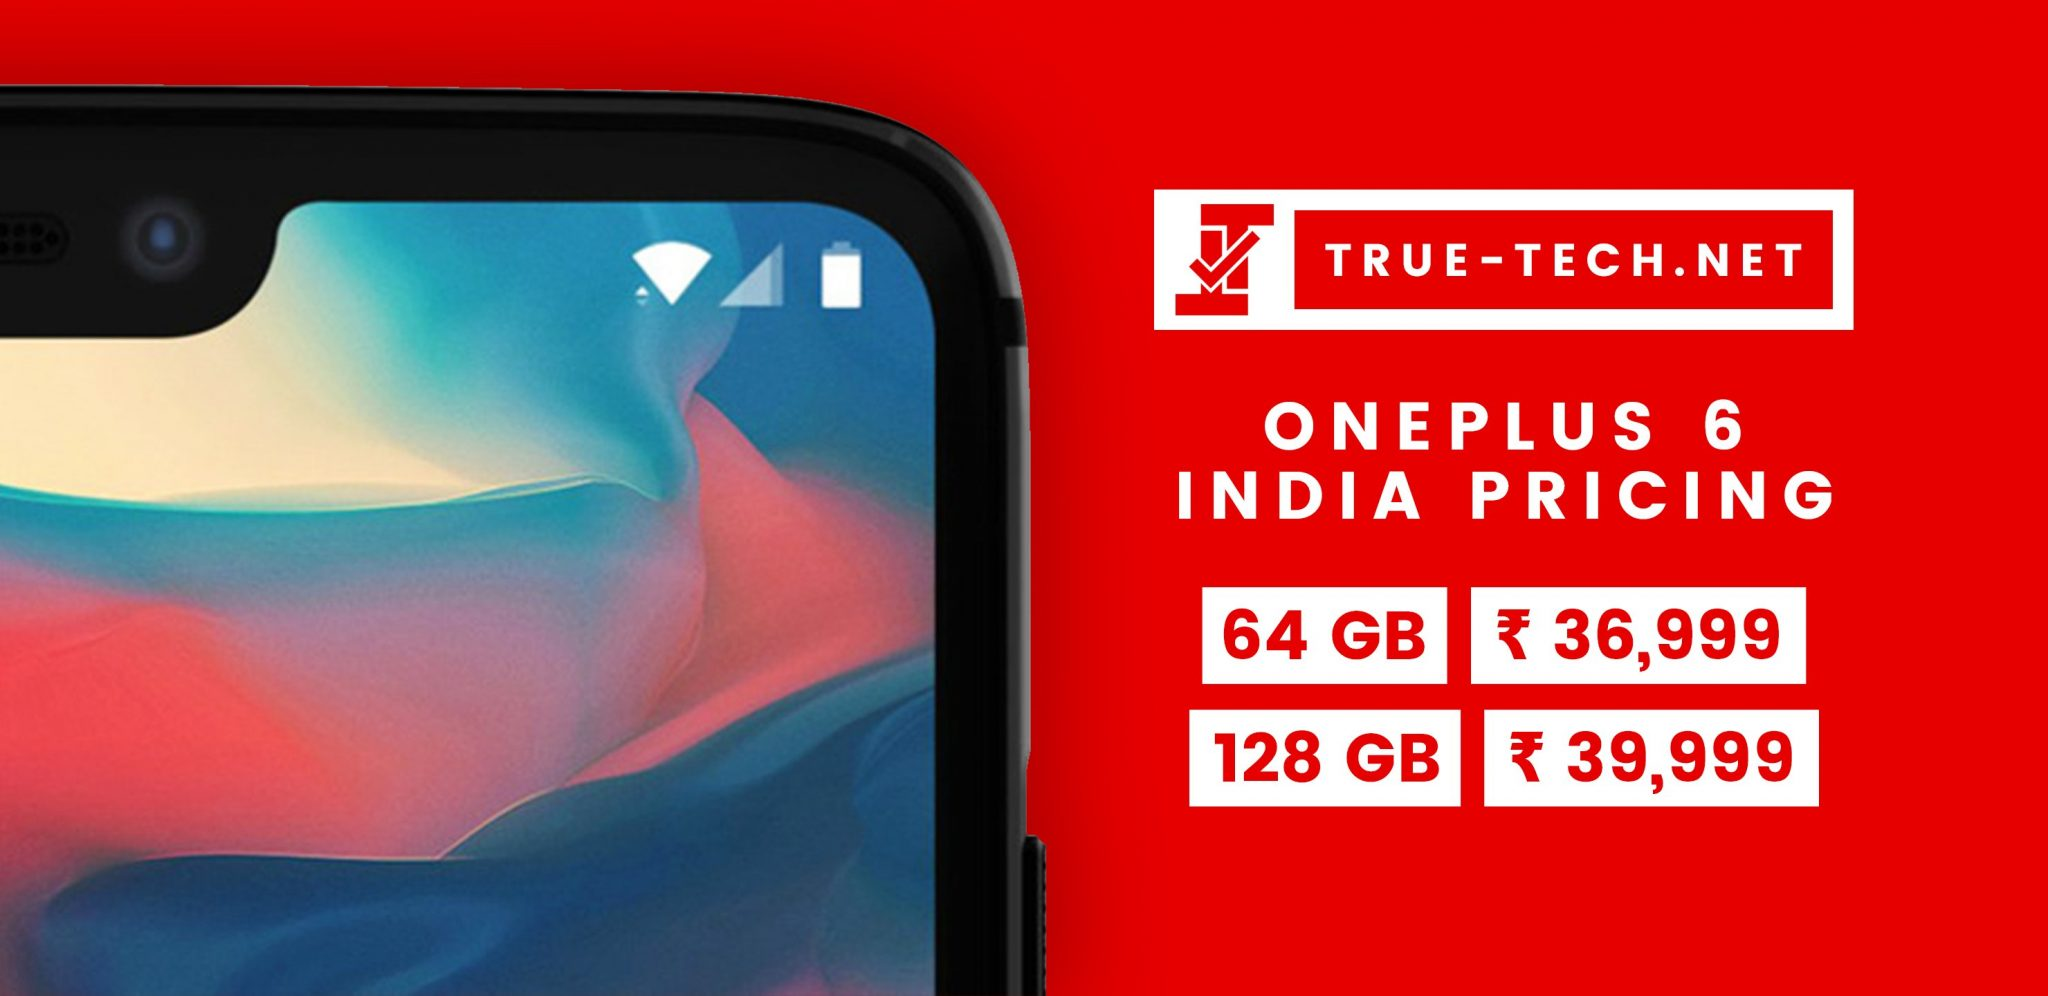 [UPDATE] Alleged OnePlus 6 pricing for India leaks out 1